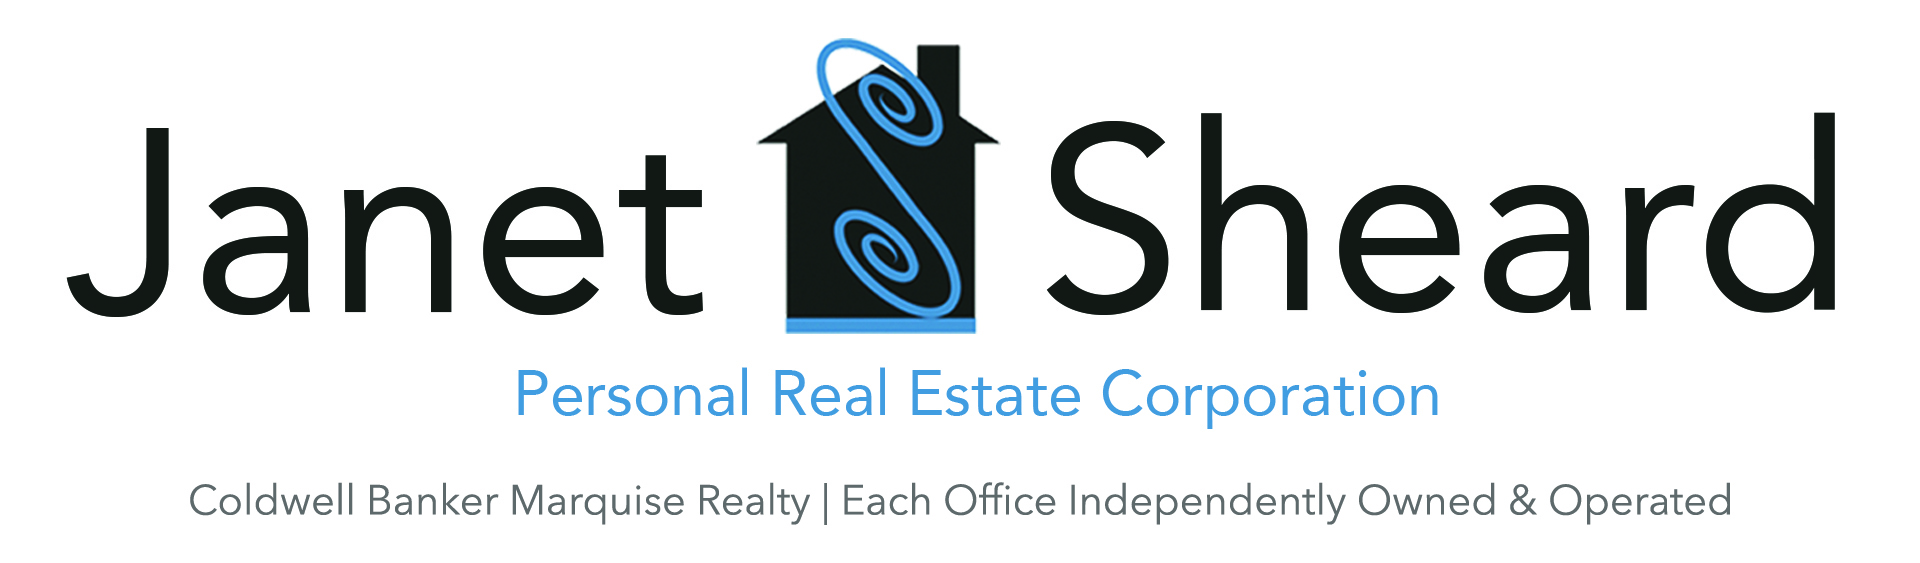 Janet Sheard - Personal Real Estate Corporation